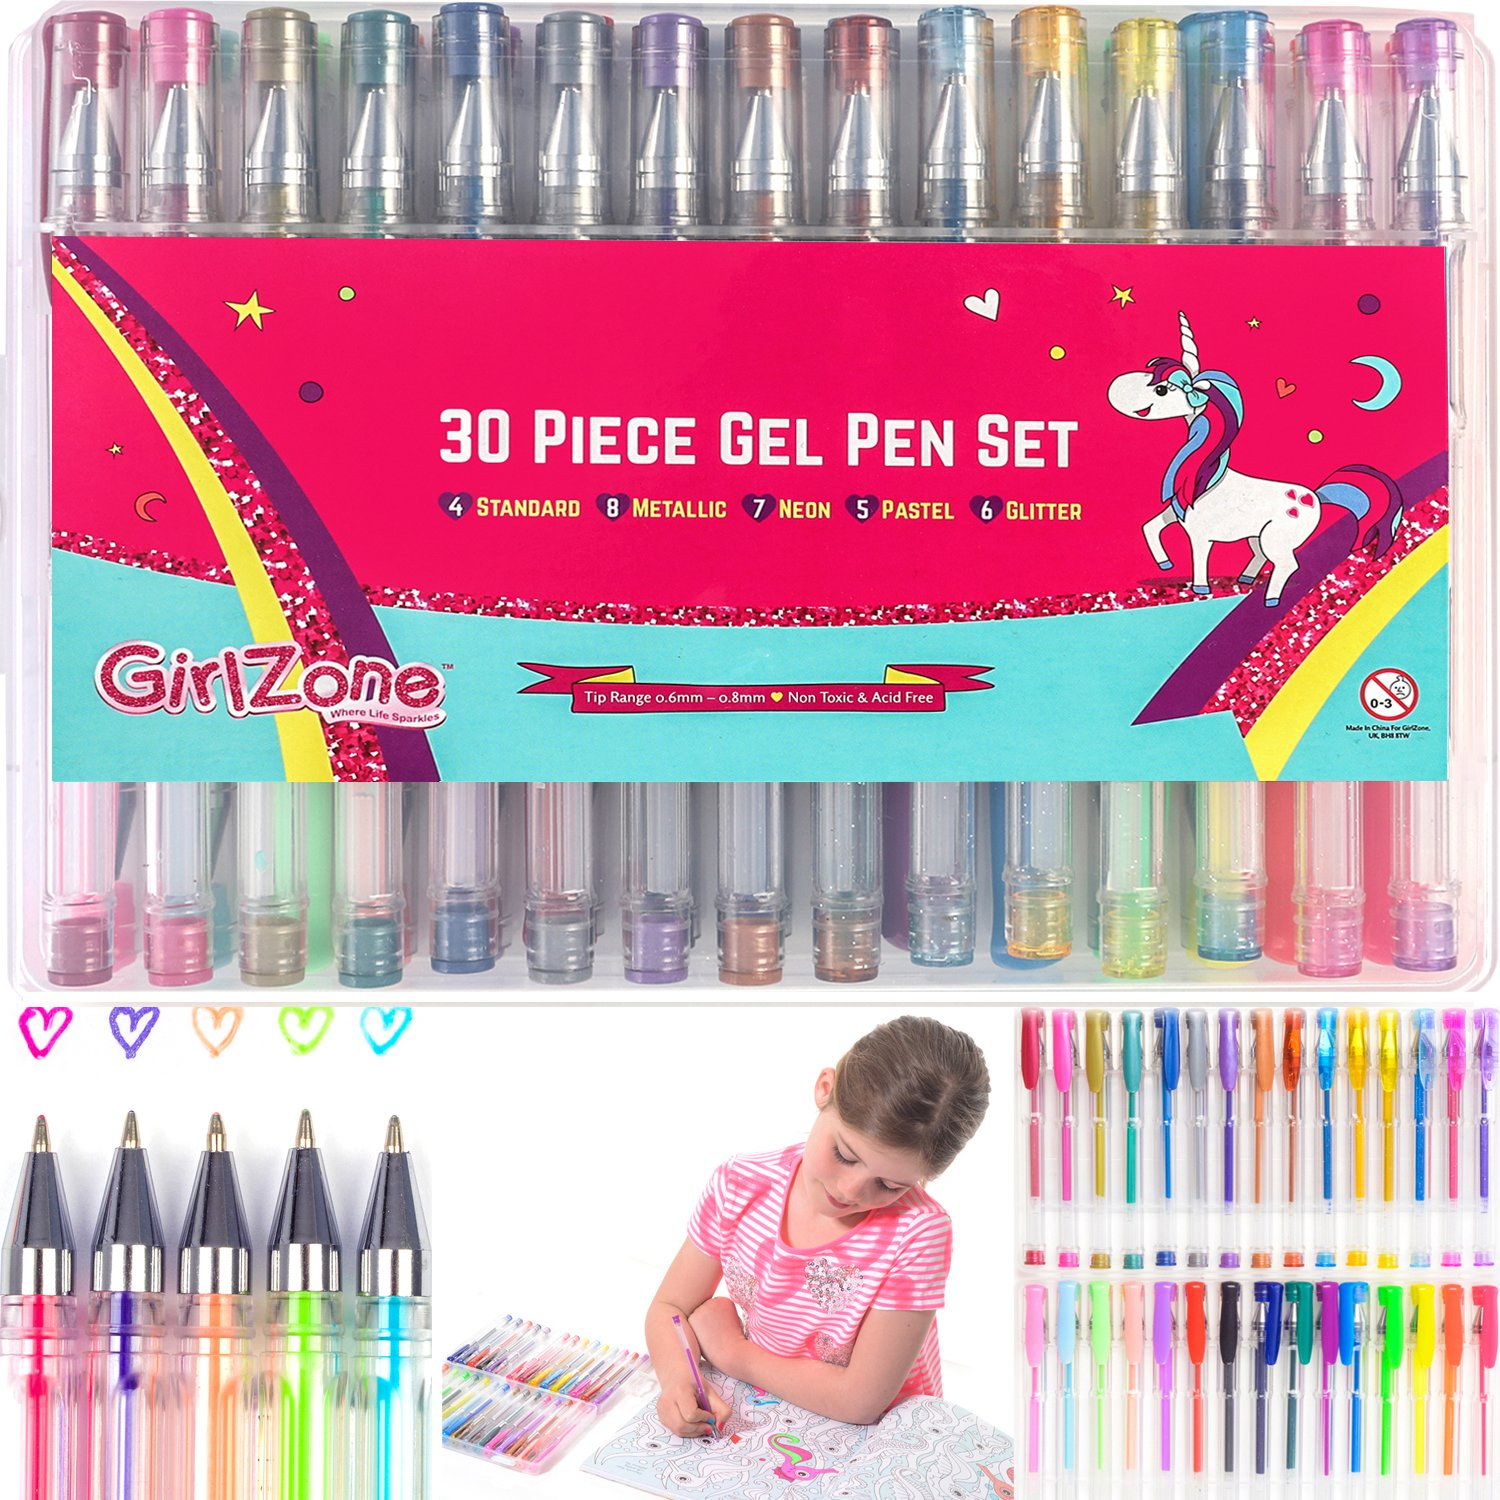 GirlZone: 30 Piece Gel Pens Set, Ideal Arts & Crafts Gift, Coloring Pens, Great Birthday Gifts, Presents for Girls Age 3 4 5 6 7 8 9 10 Years Old.